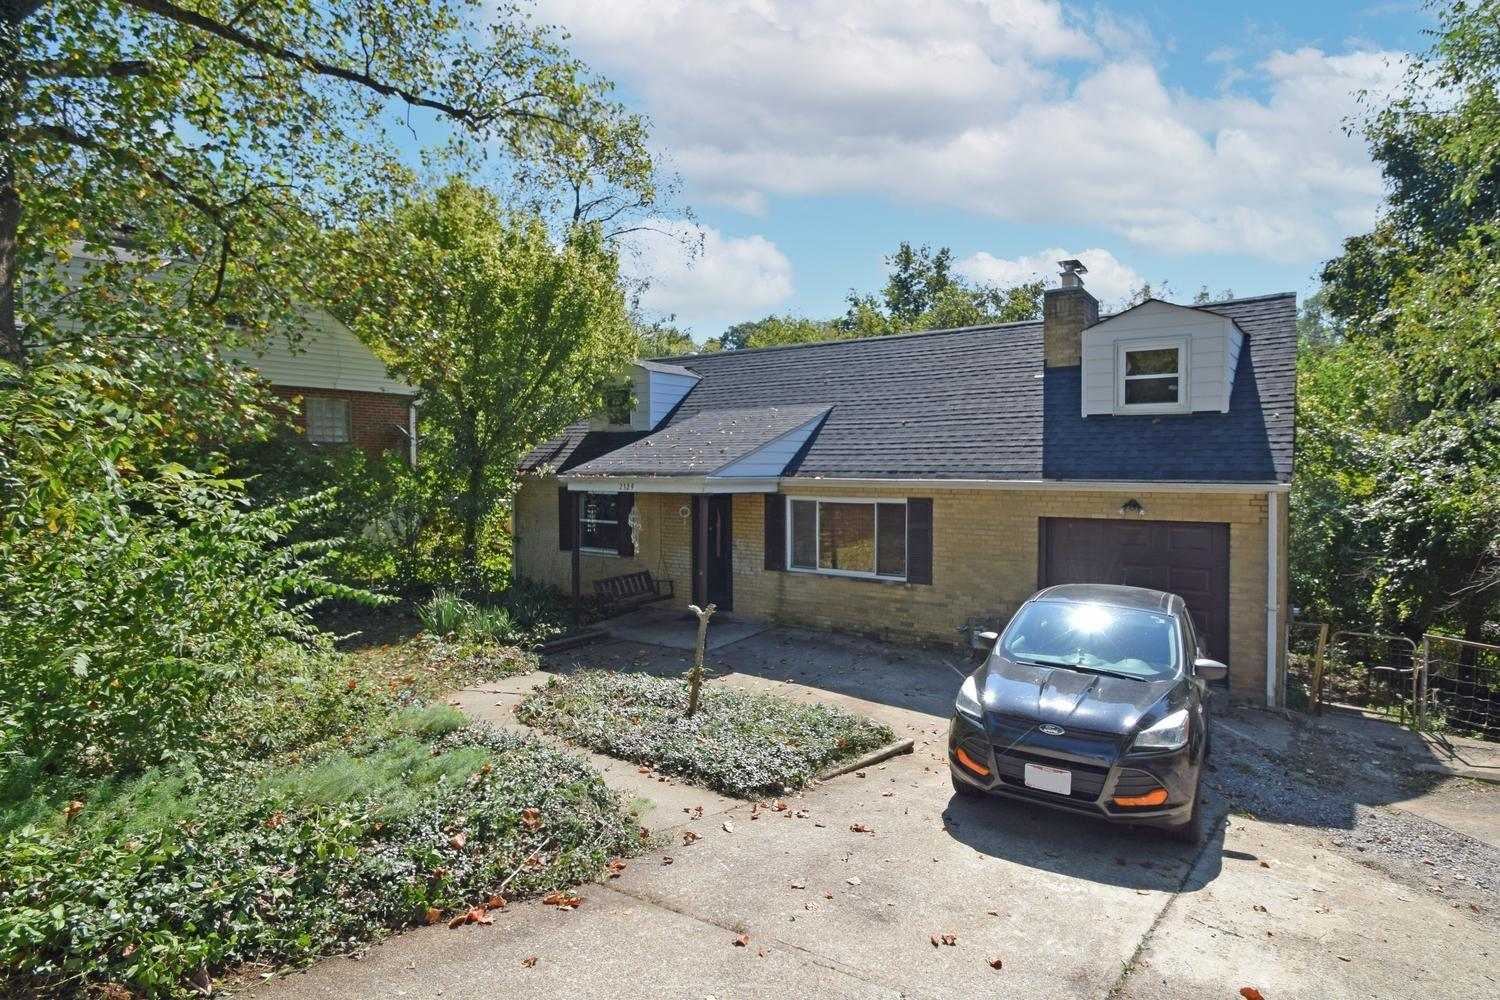 2329 Galbraith Road, Reading, Ohio 45237, 4 Bedrooms Bedrooms, 7 Rooms Rooms,2 BathroomsBathrooms,Single Family Residence,For Sale,Galbraith,1717759